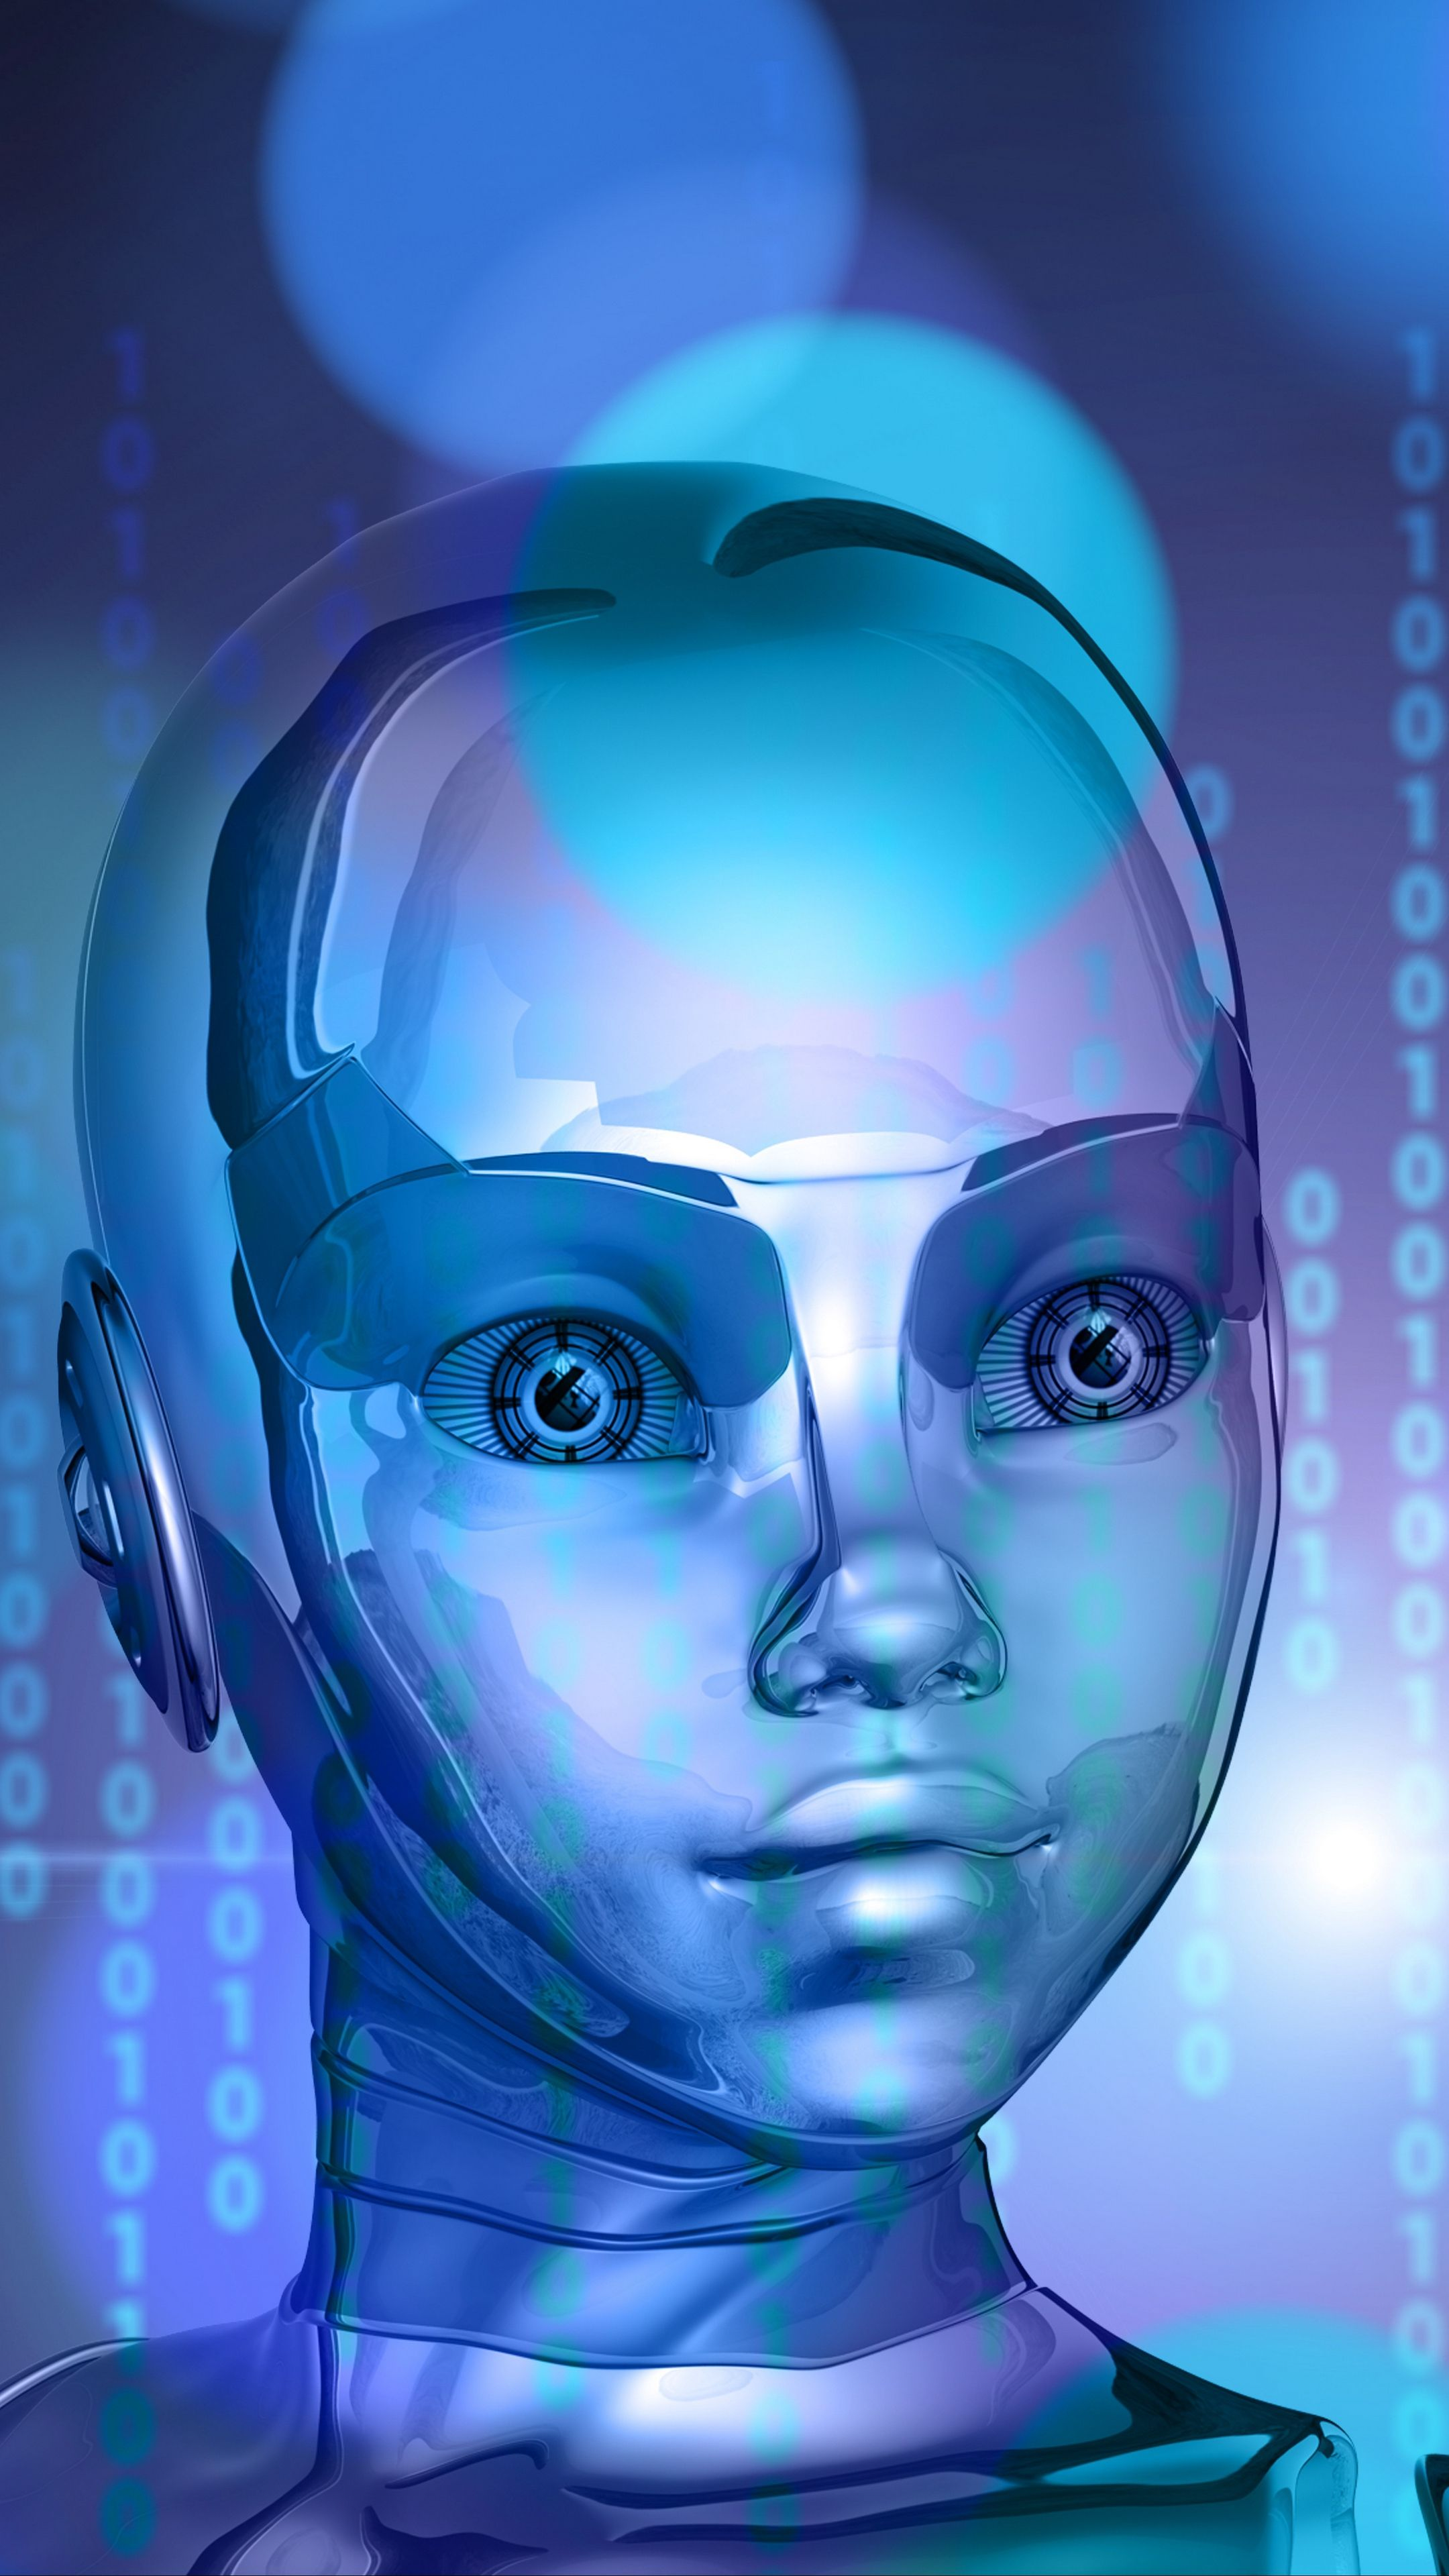 Misc robot, binary code, face, metal android